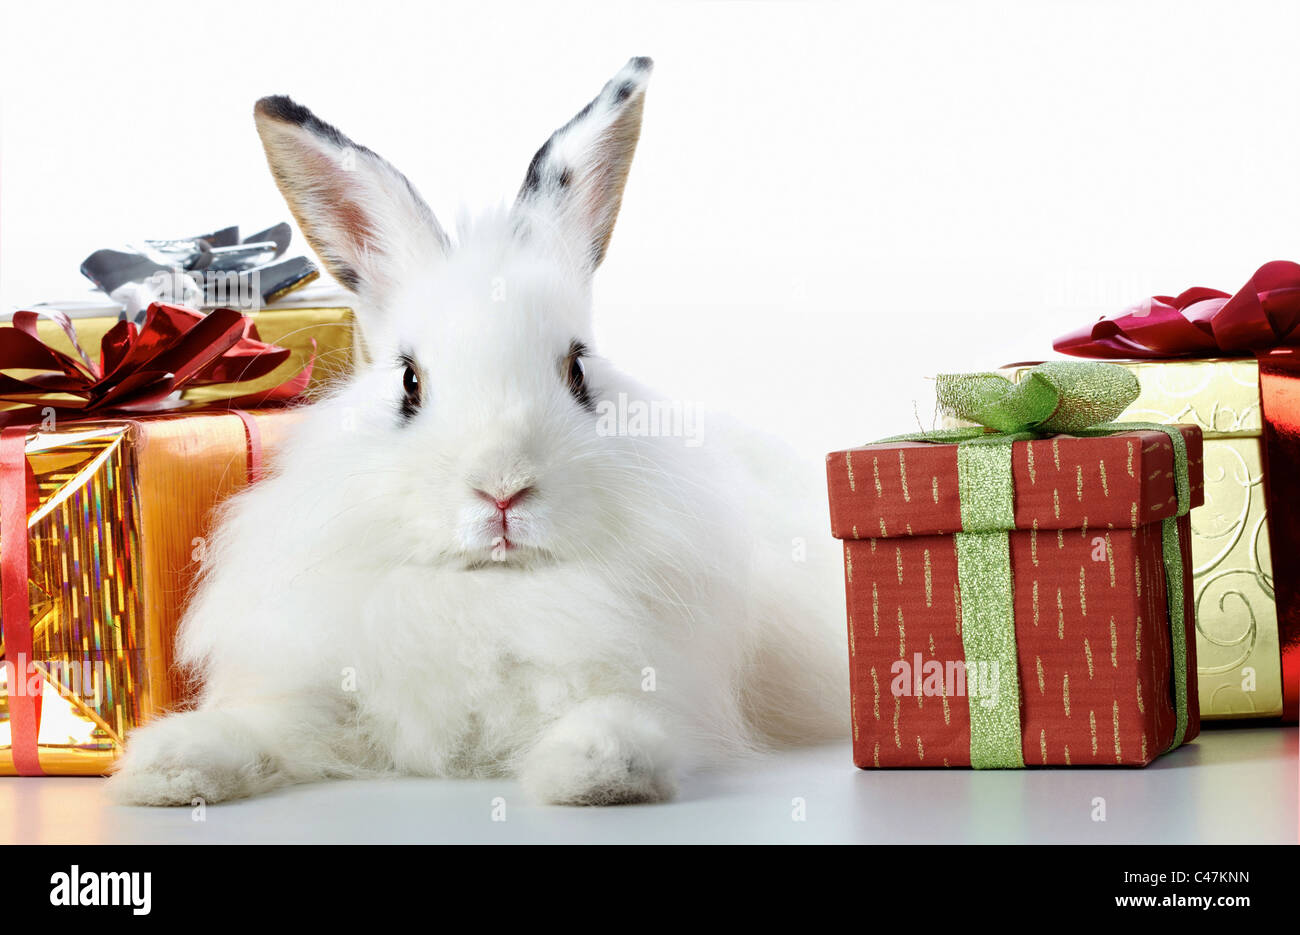 Image of cautious rabbit surrounded by giftboxes - Stock Image